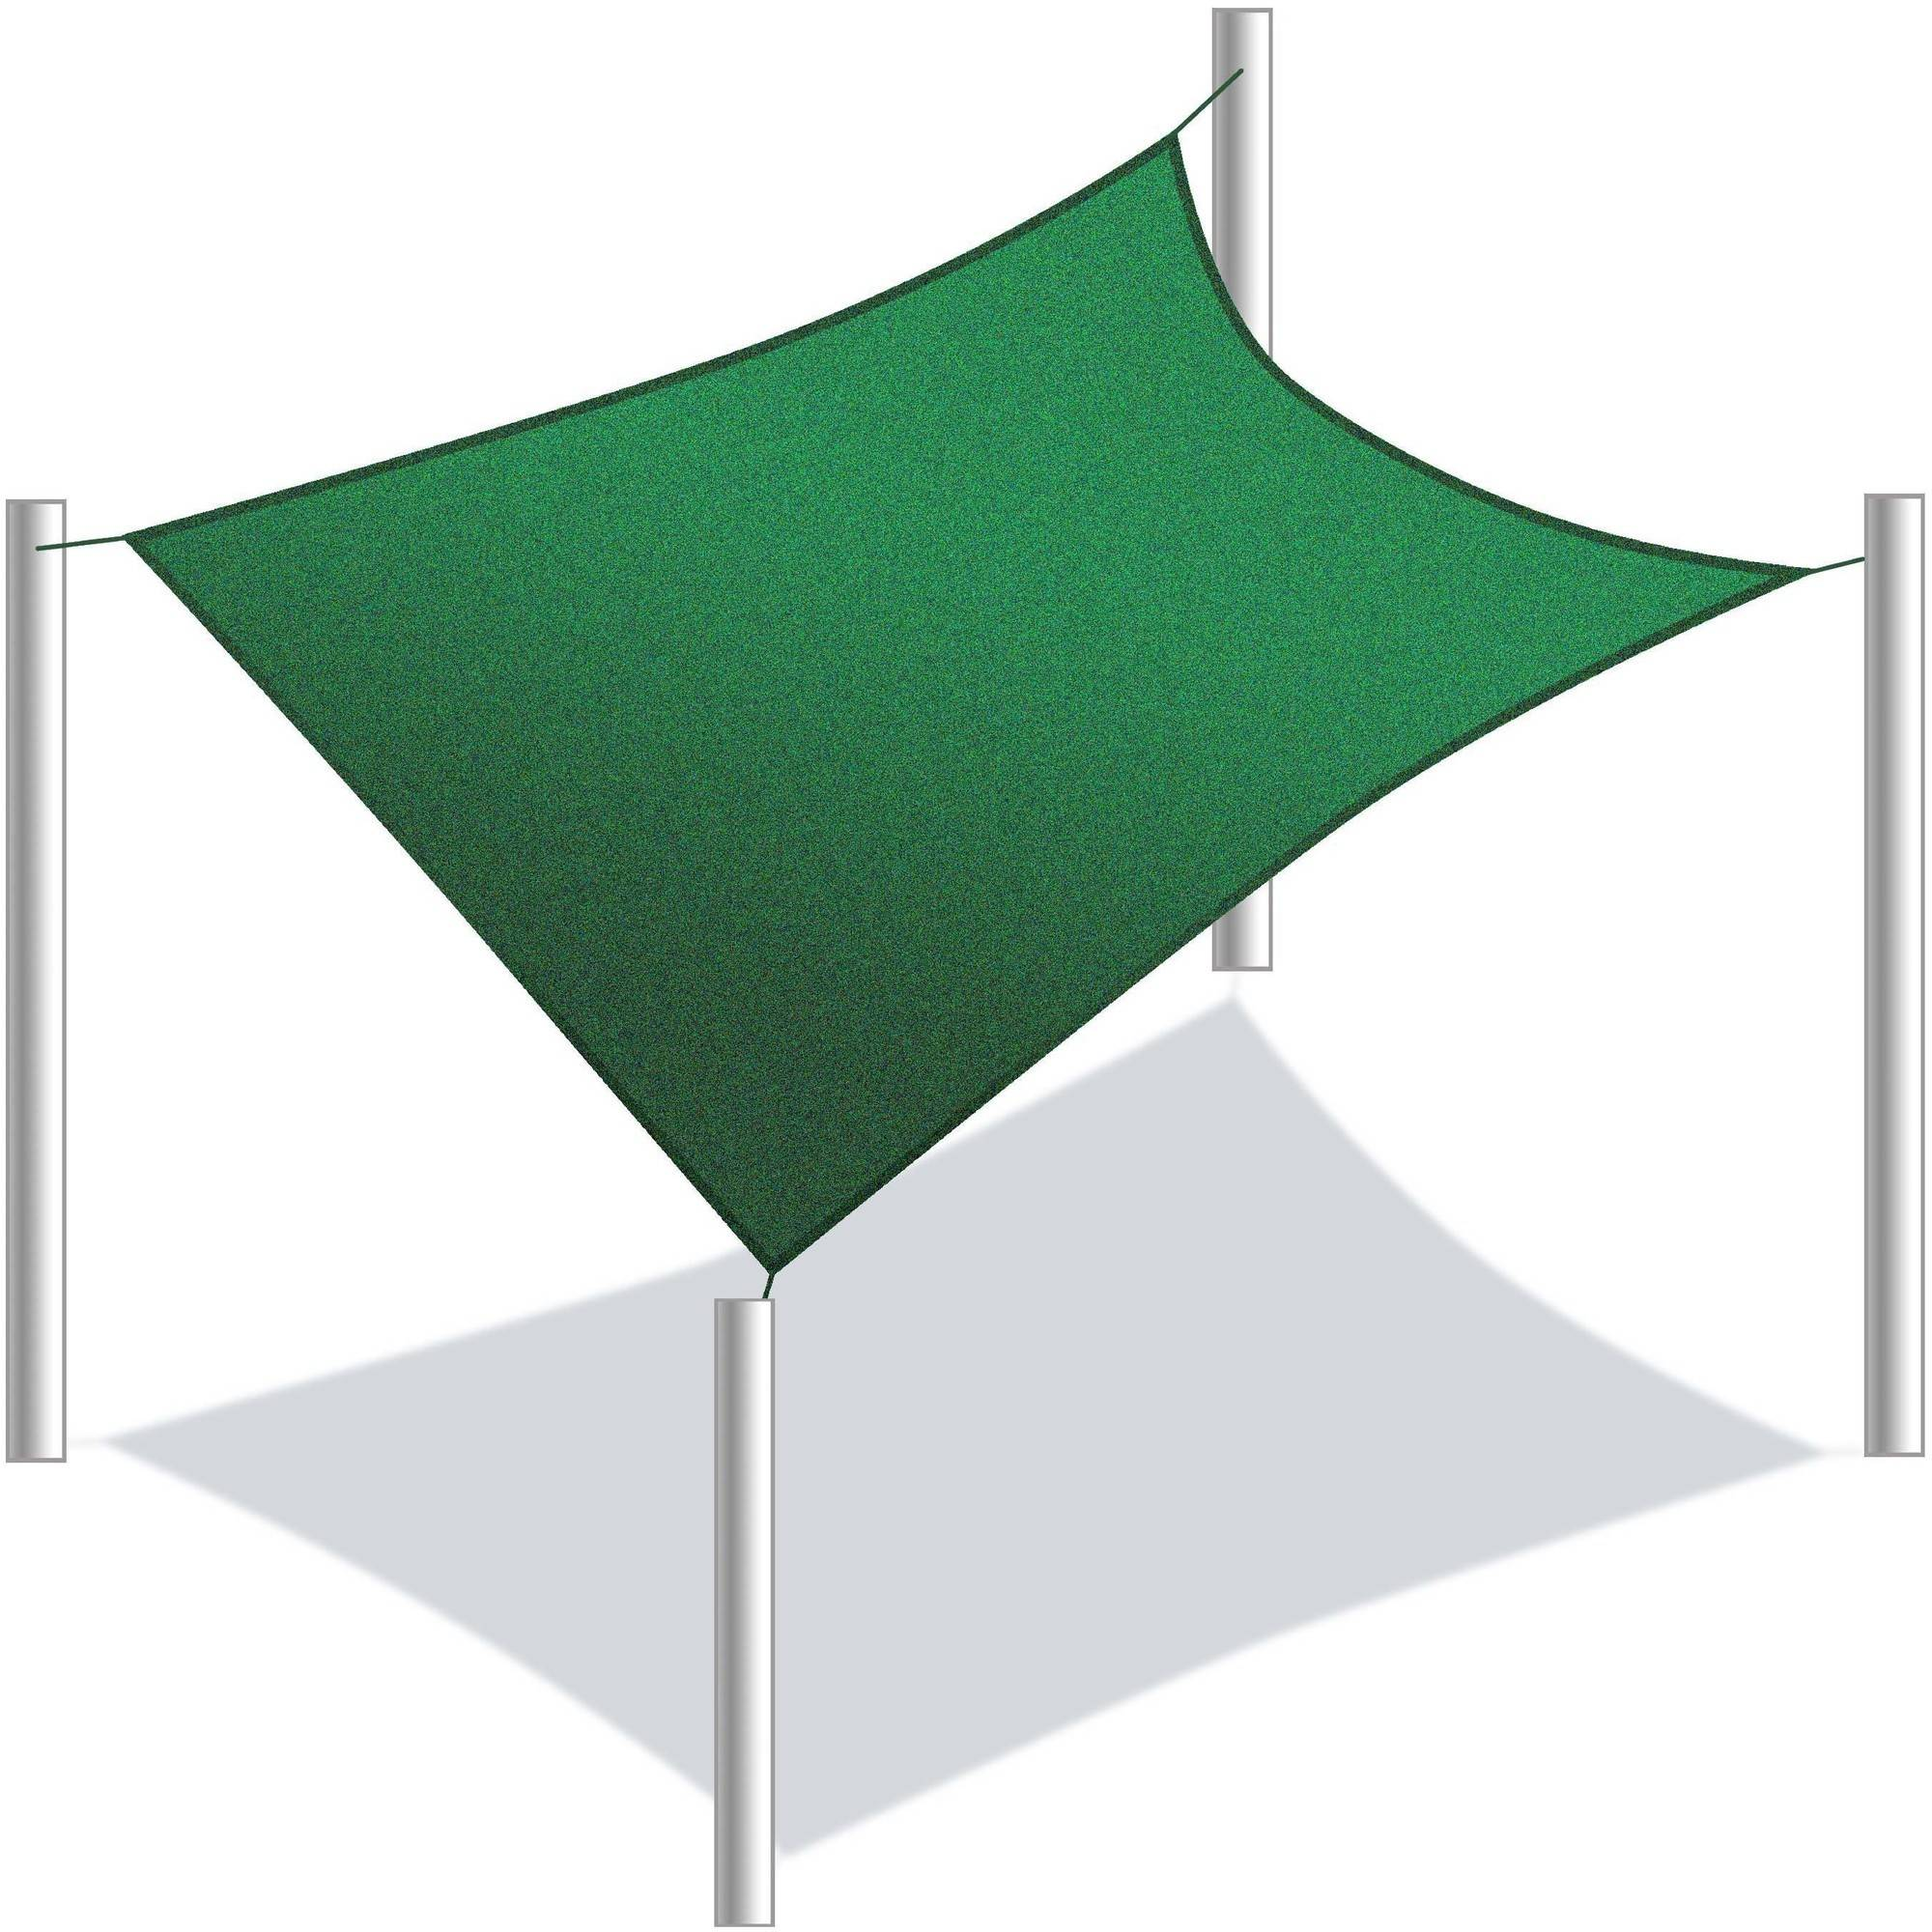 ALEKO Rectangle 10' x 10' Waterproof Sun Shade Sail Canopy Tent Replacement, Green by ALEKO